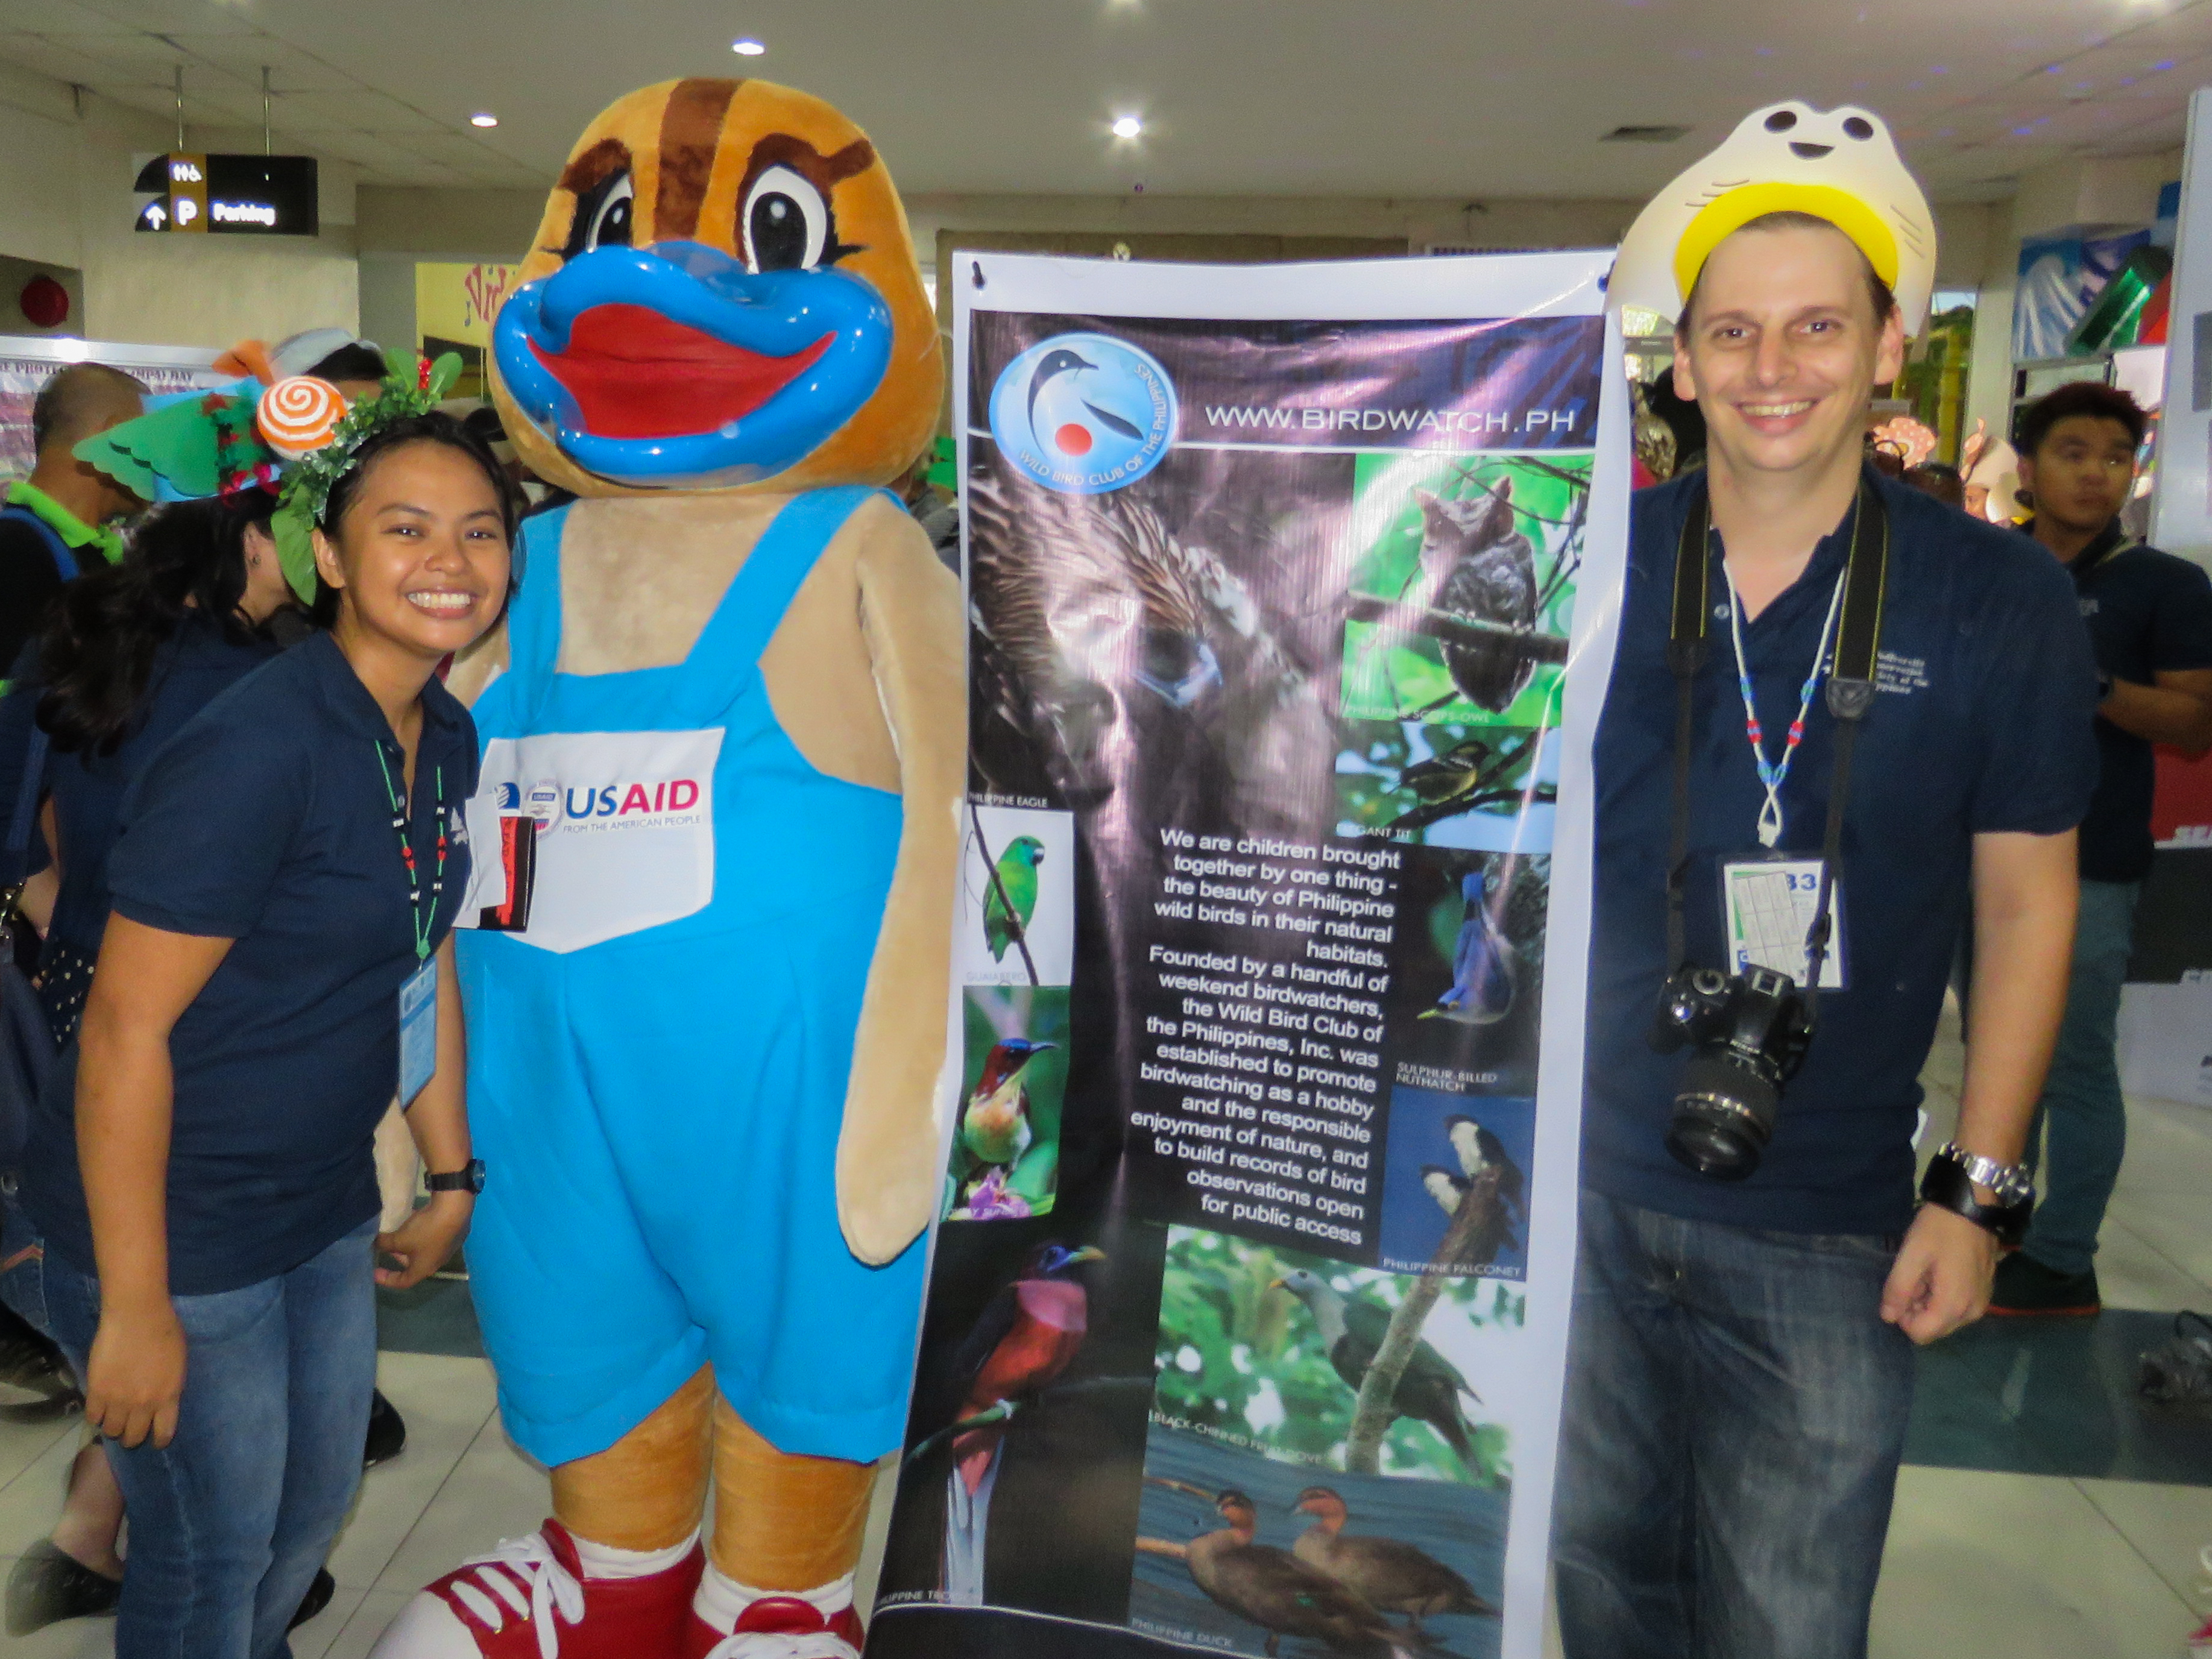 With Papan the Philipppine Duck mascot of B+WISER